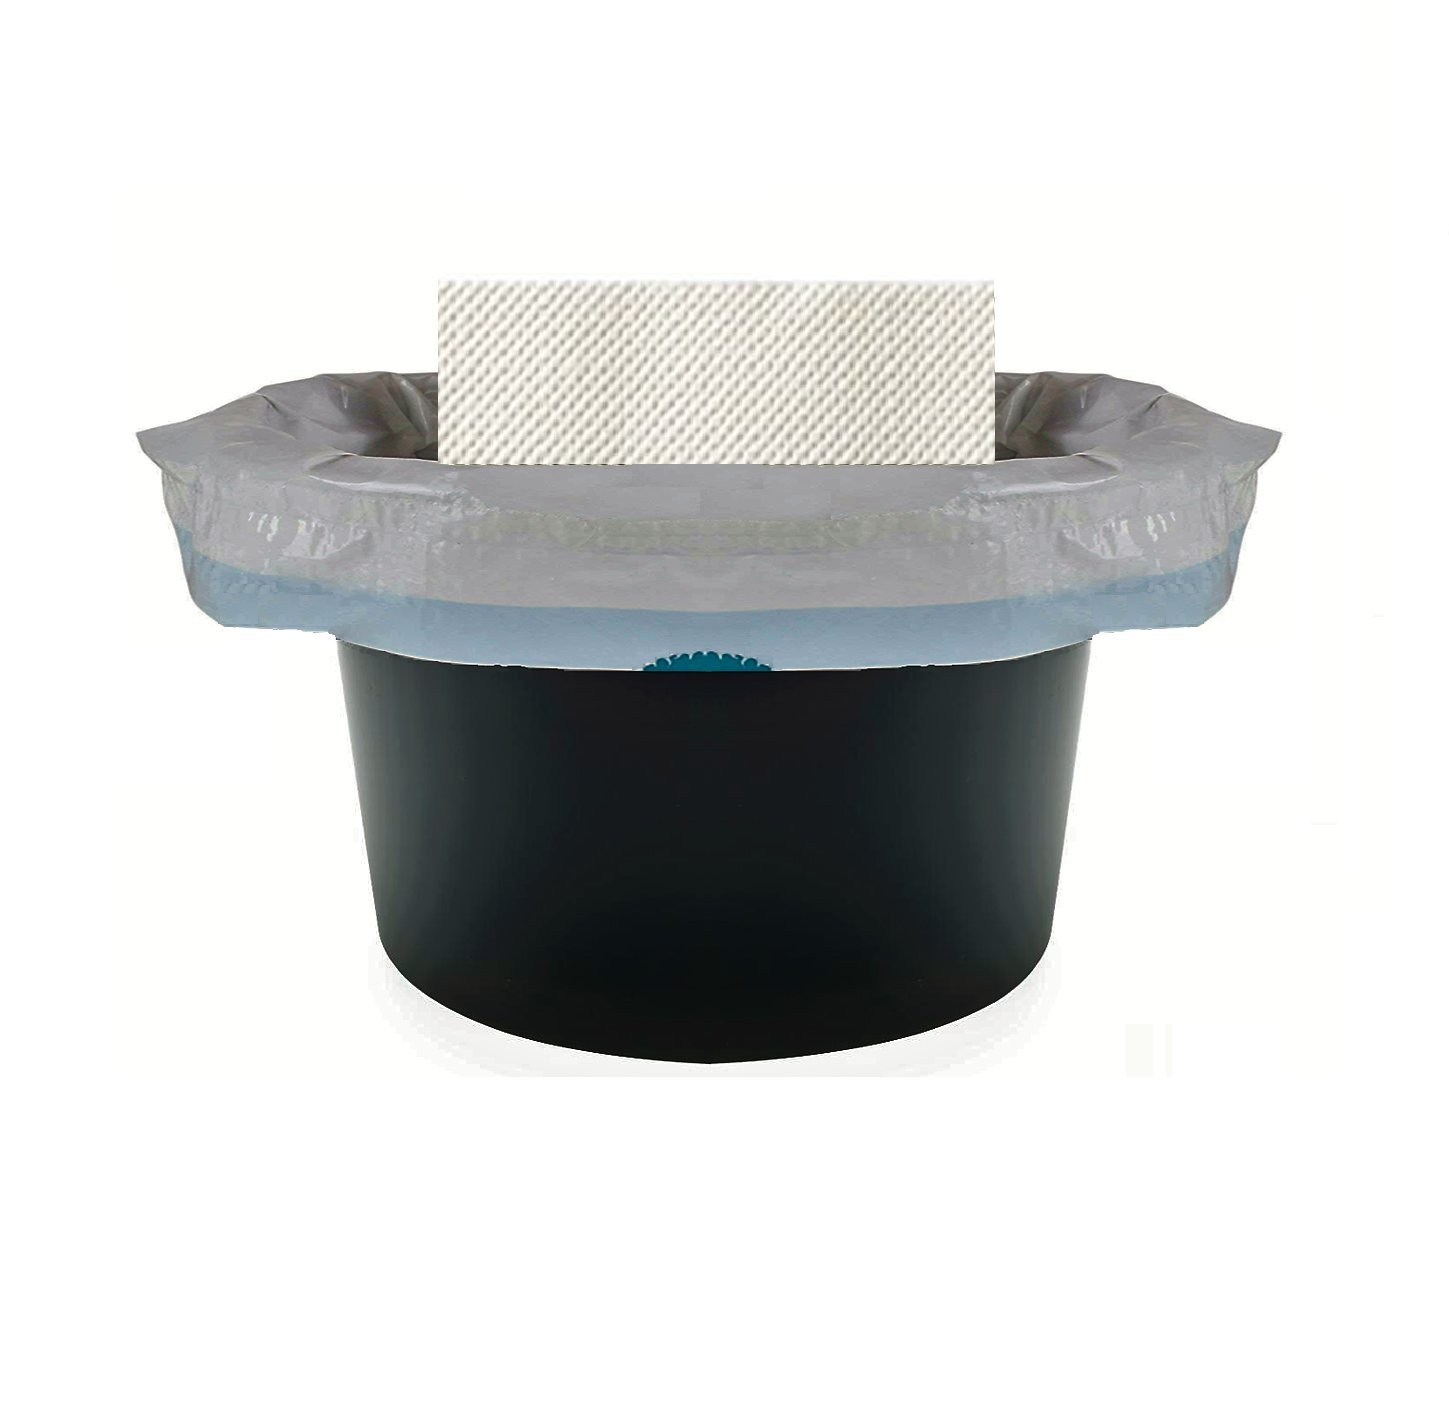 Vakly Commode Liners with Super Absorbent Pads (48 Pack) Fits All Standard Commodes